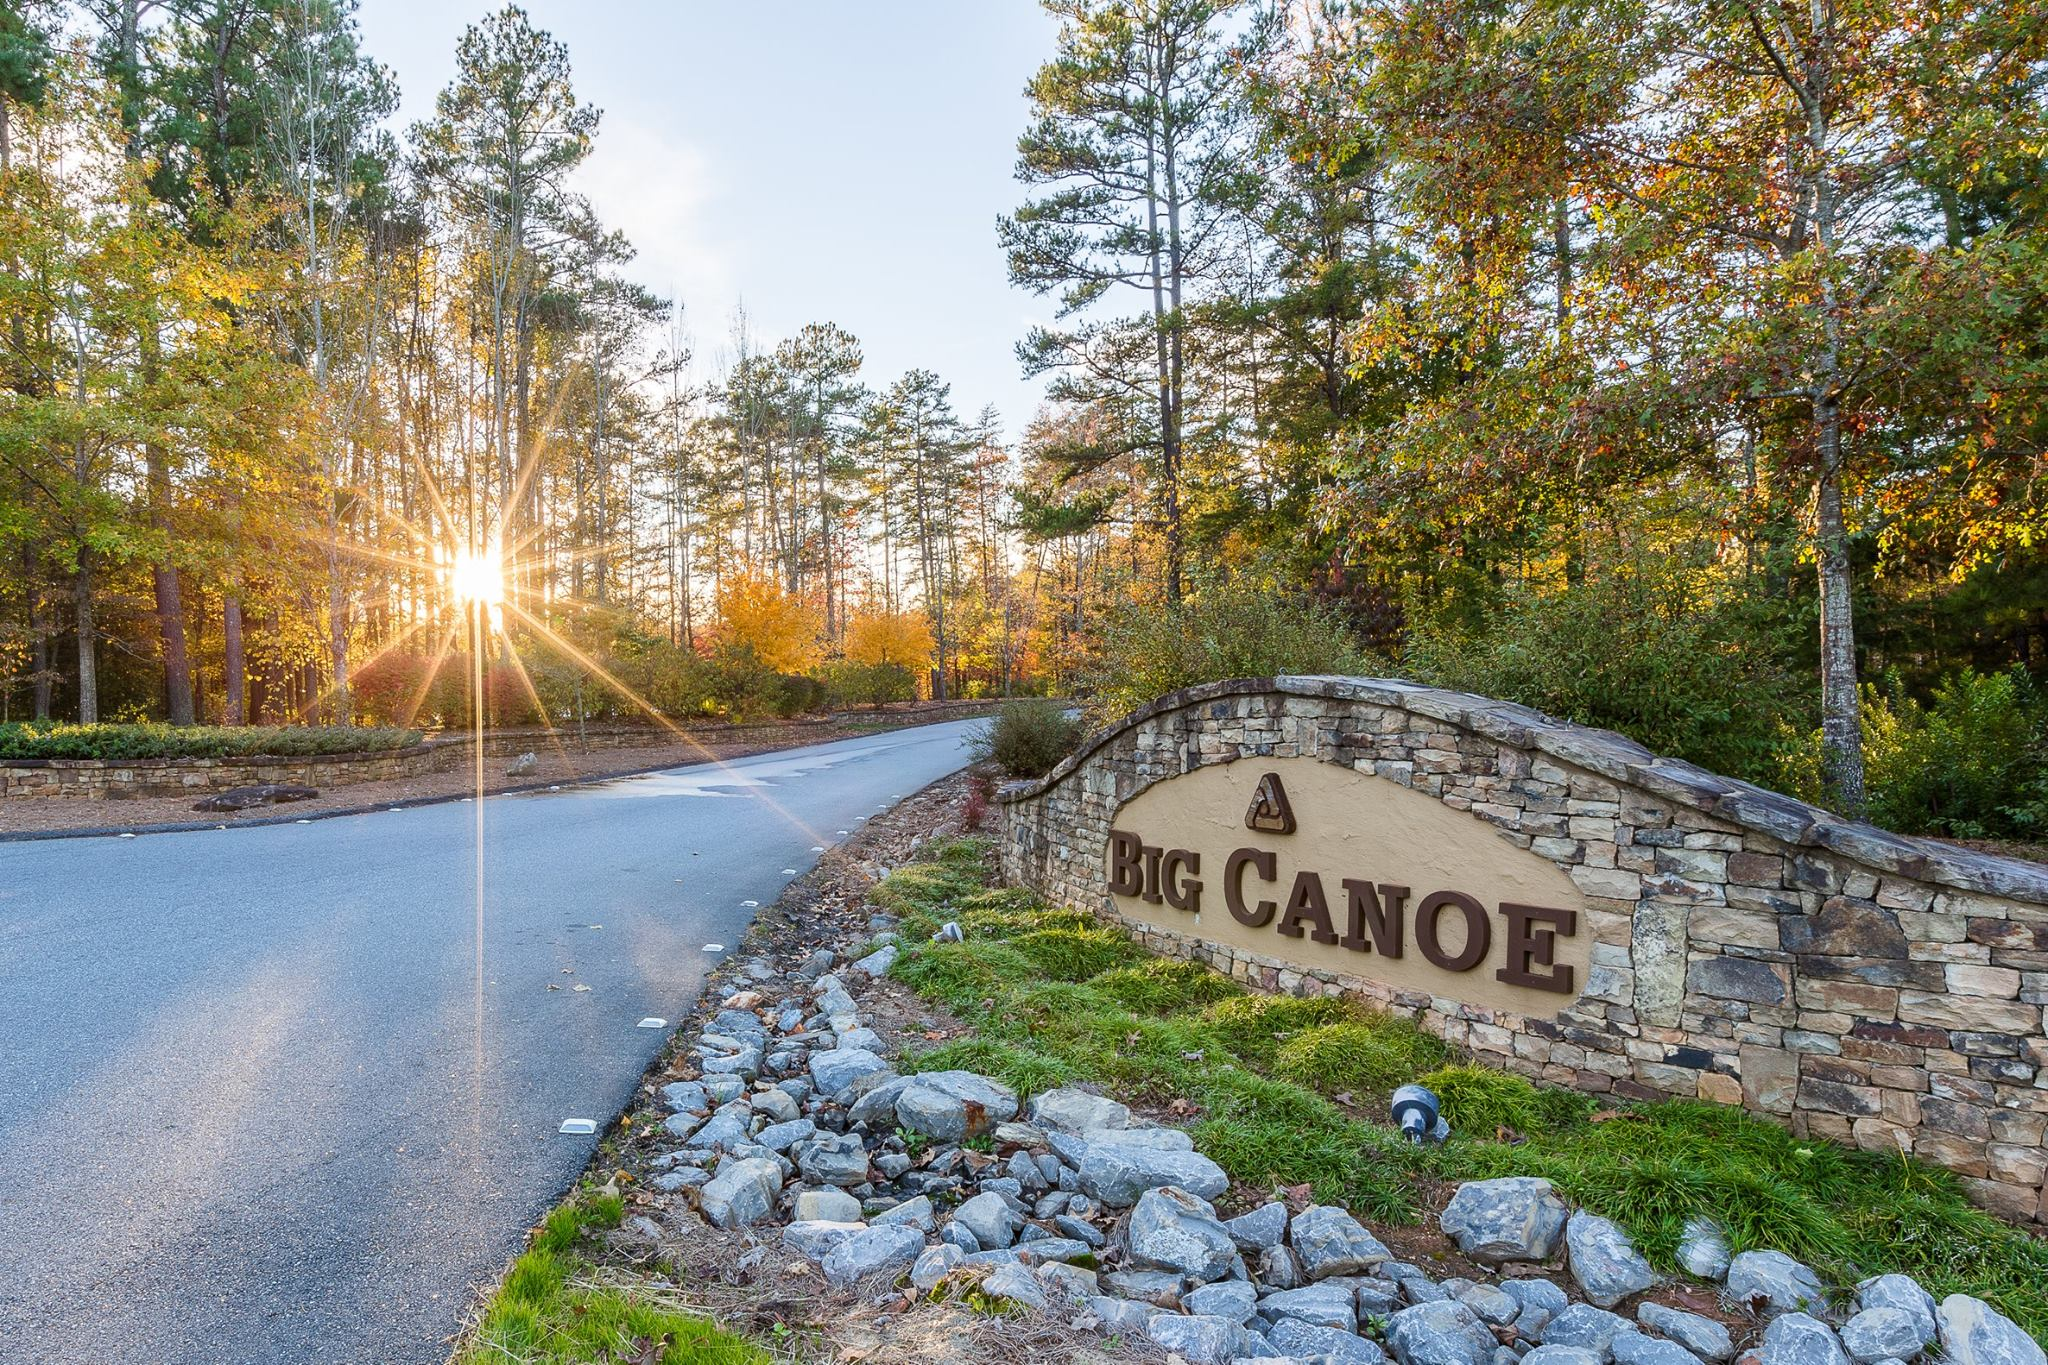 Big Canoe Poa Approves Purchase Of Unsold Property In